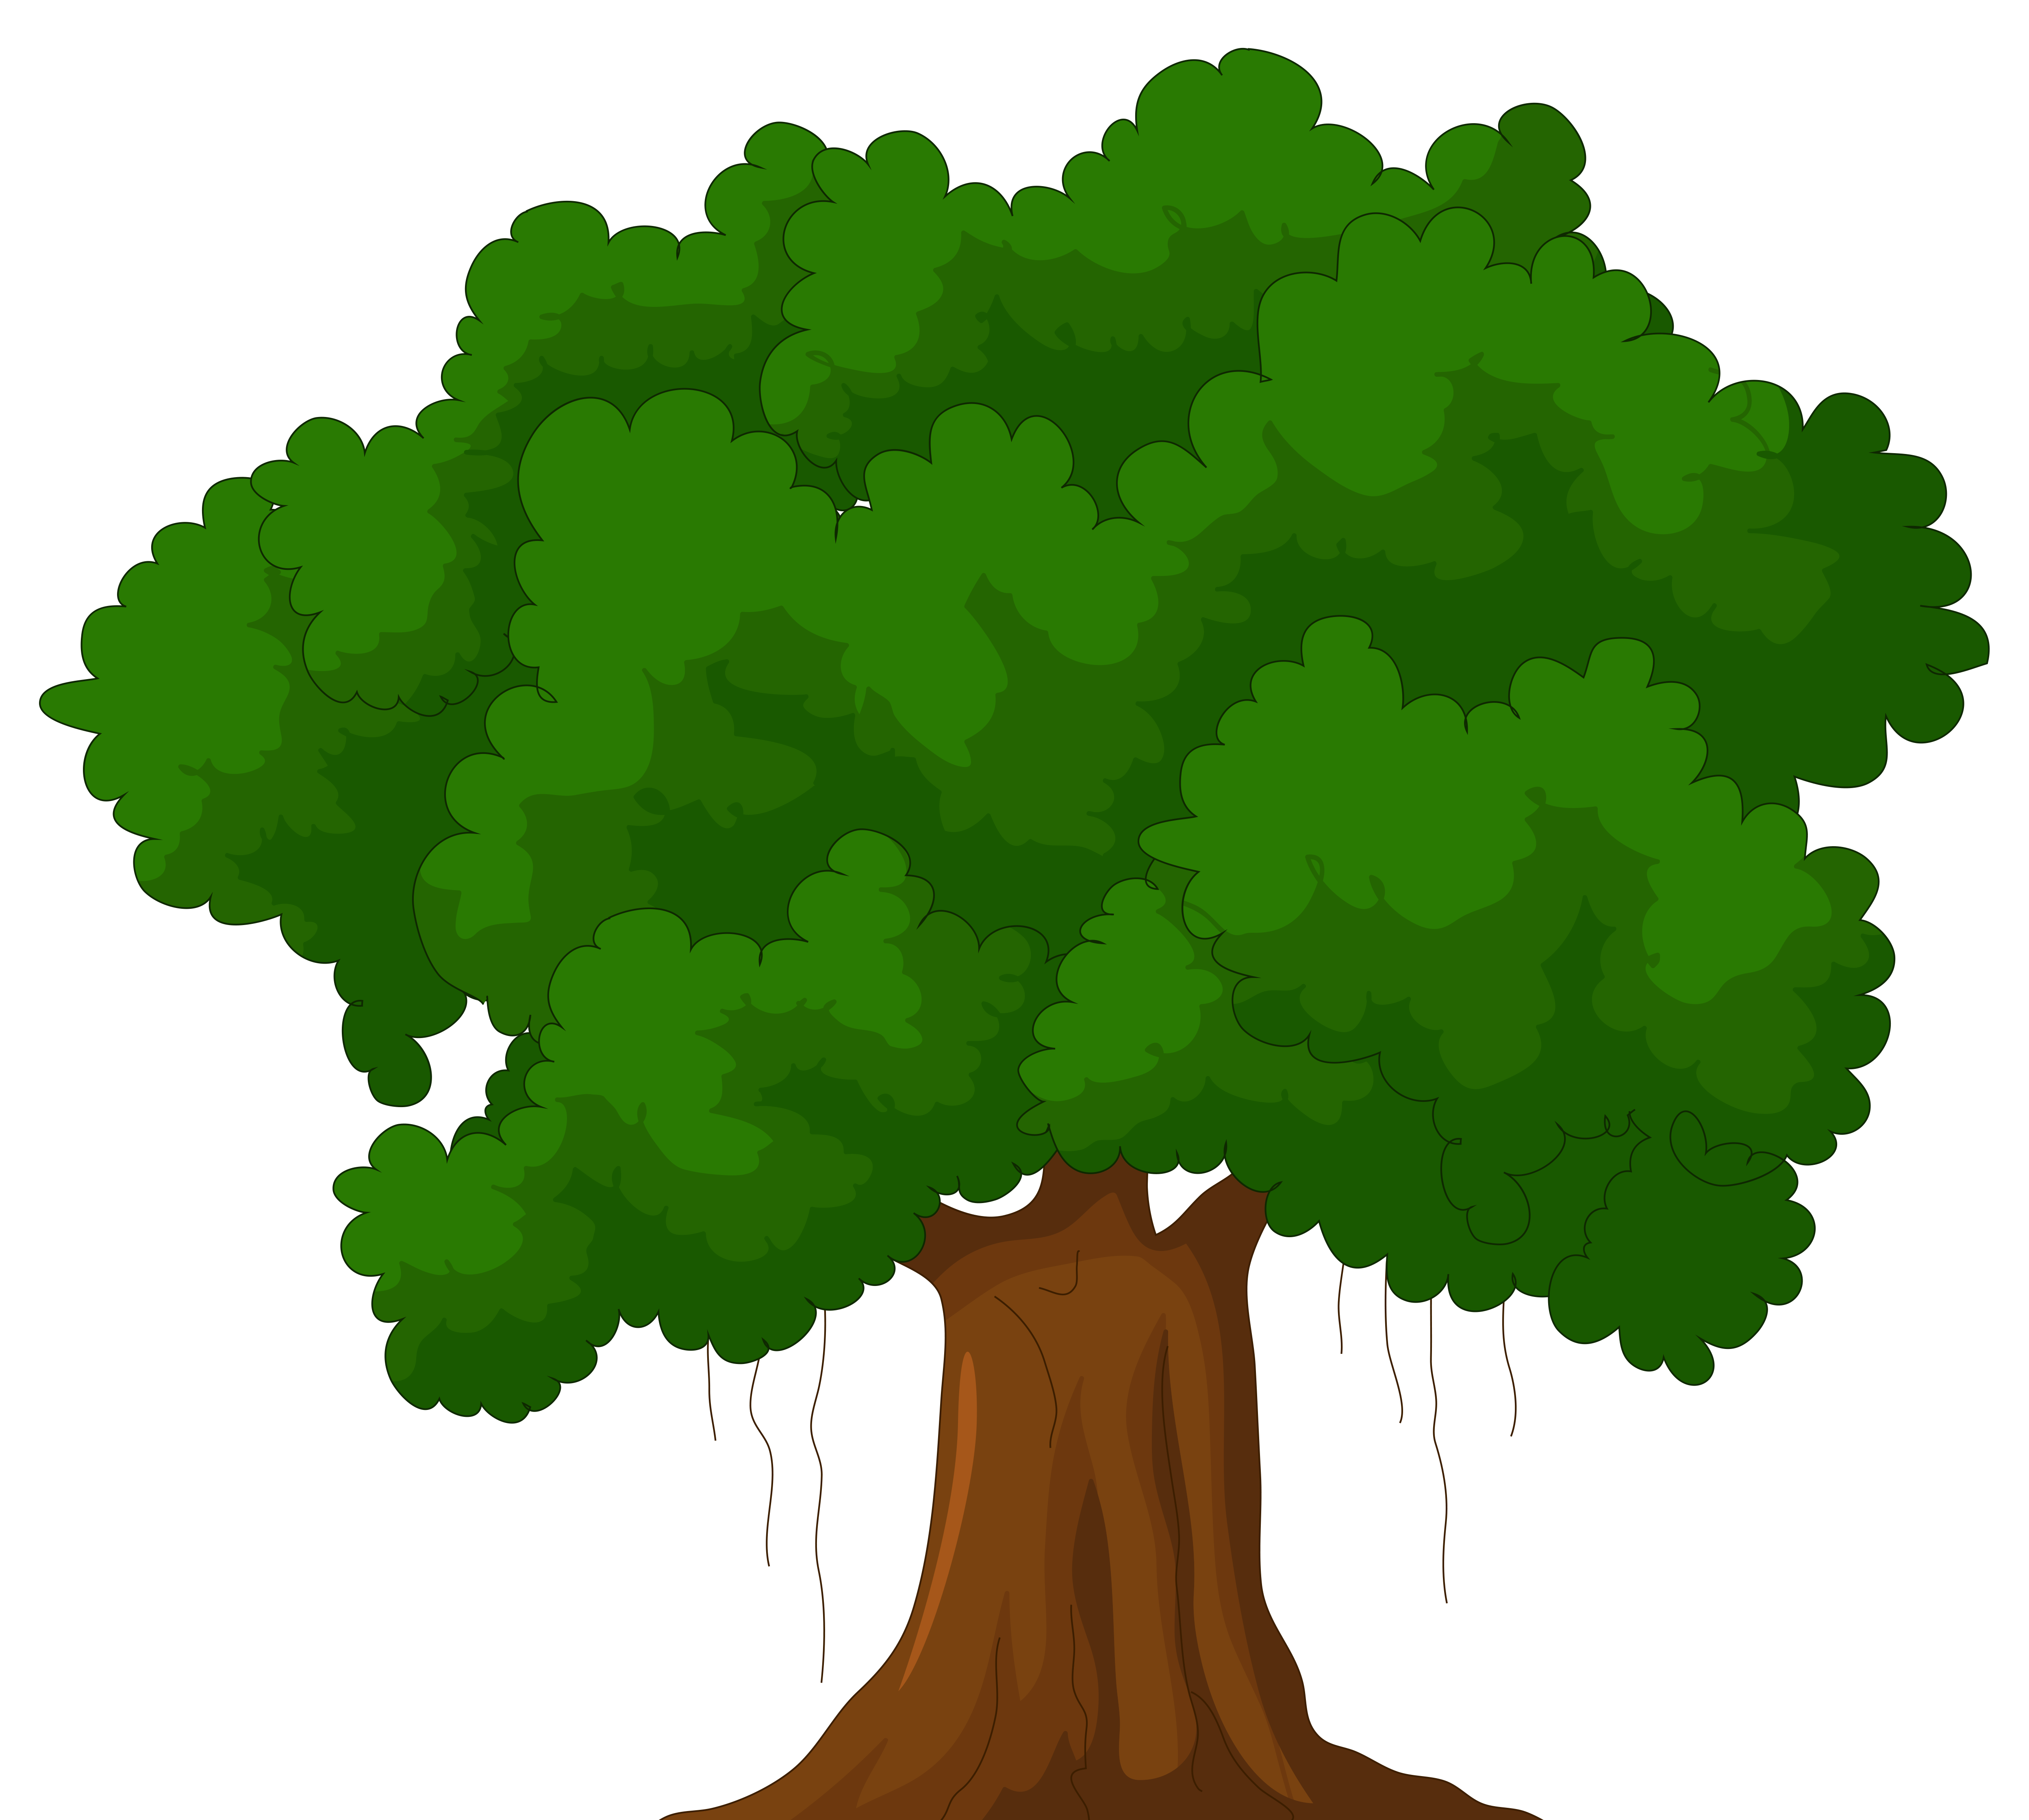 4992x4478 Banyan Tree Clipart Animated